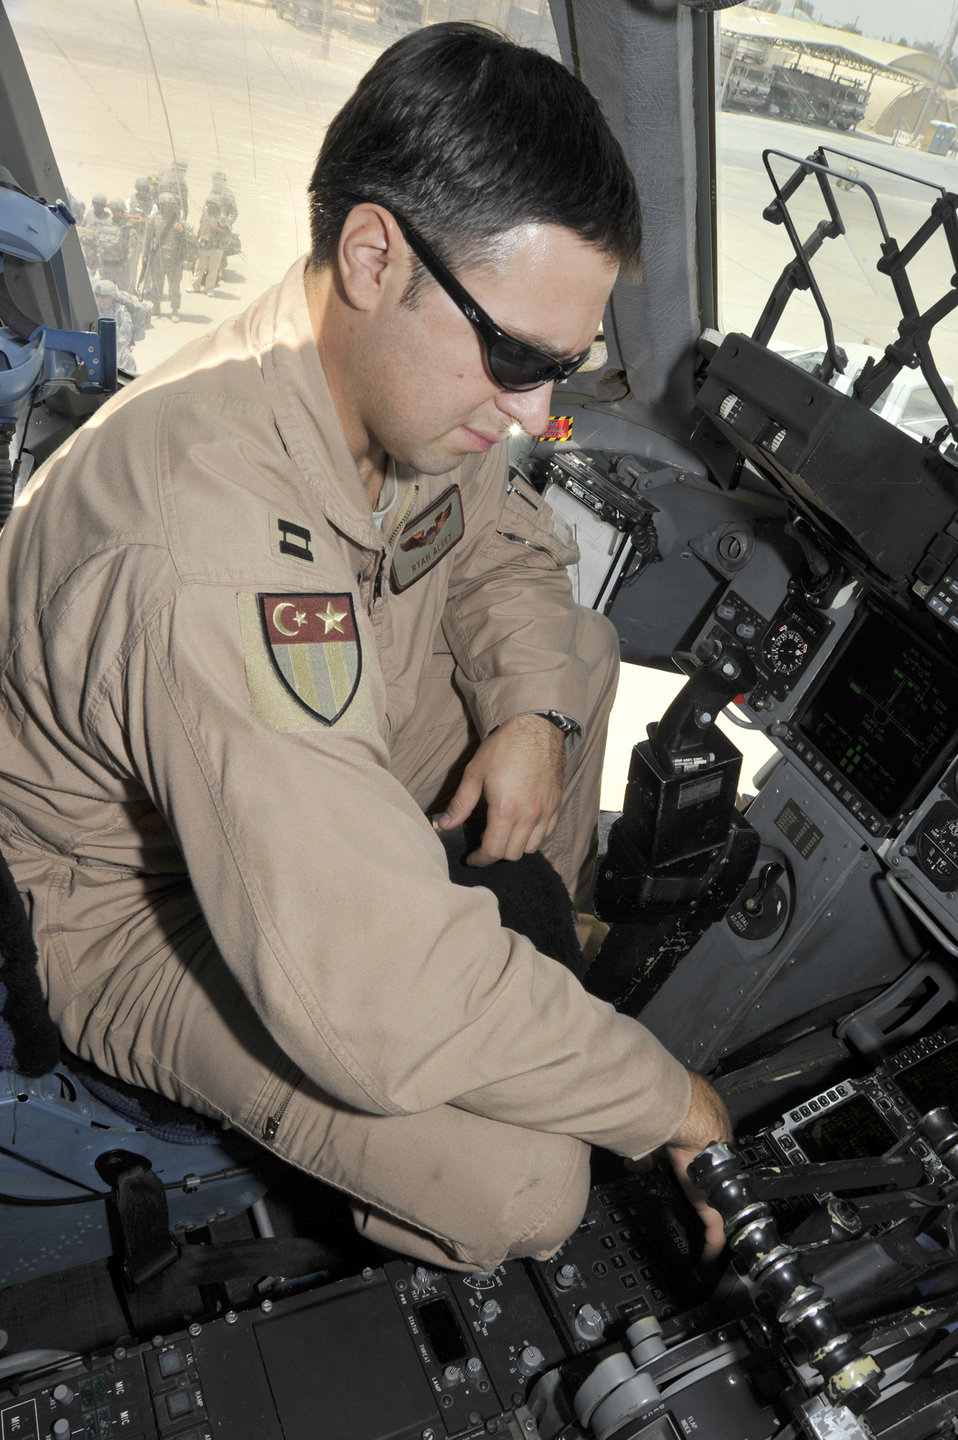 Air Force assets play vital role in Iraq Drawdown